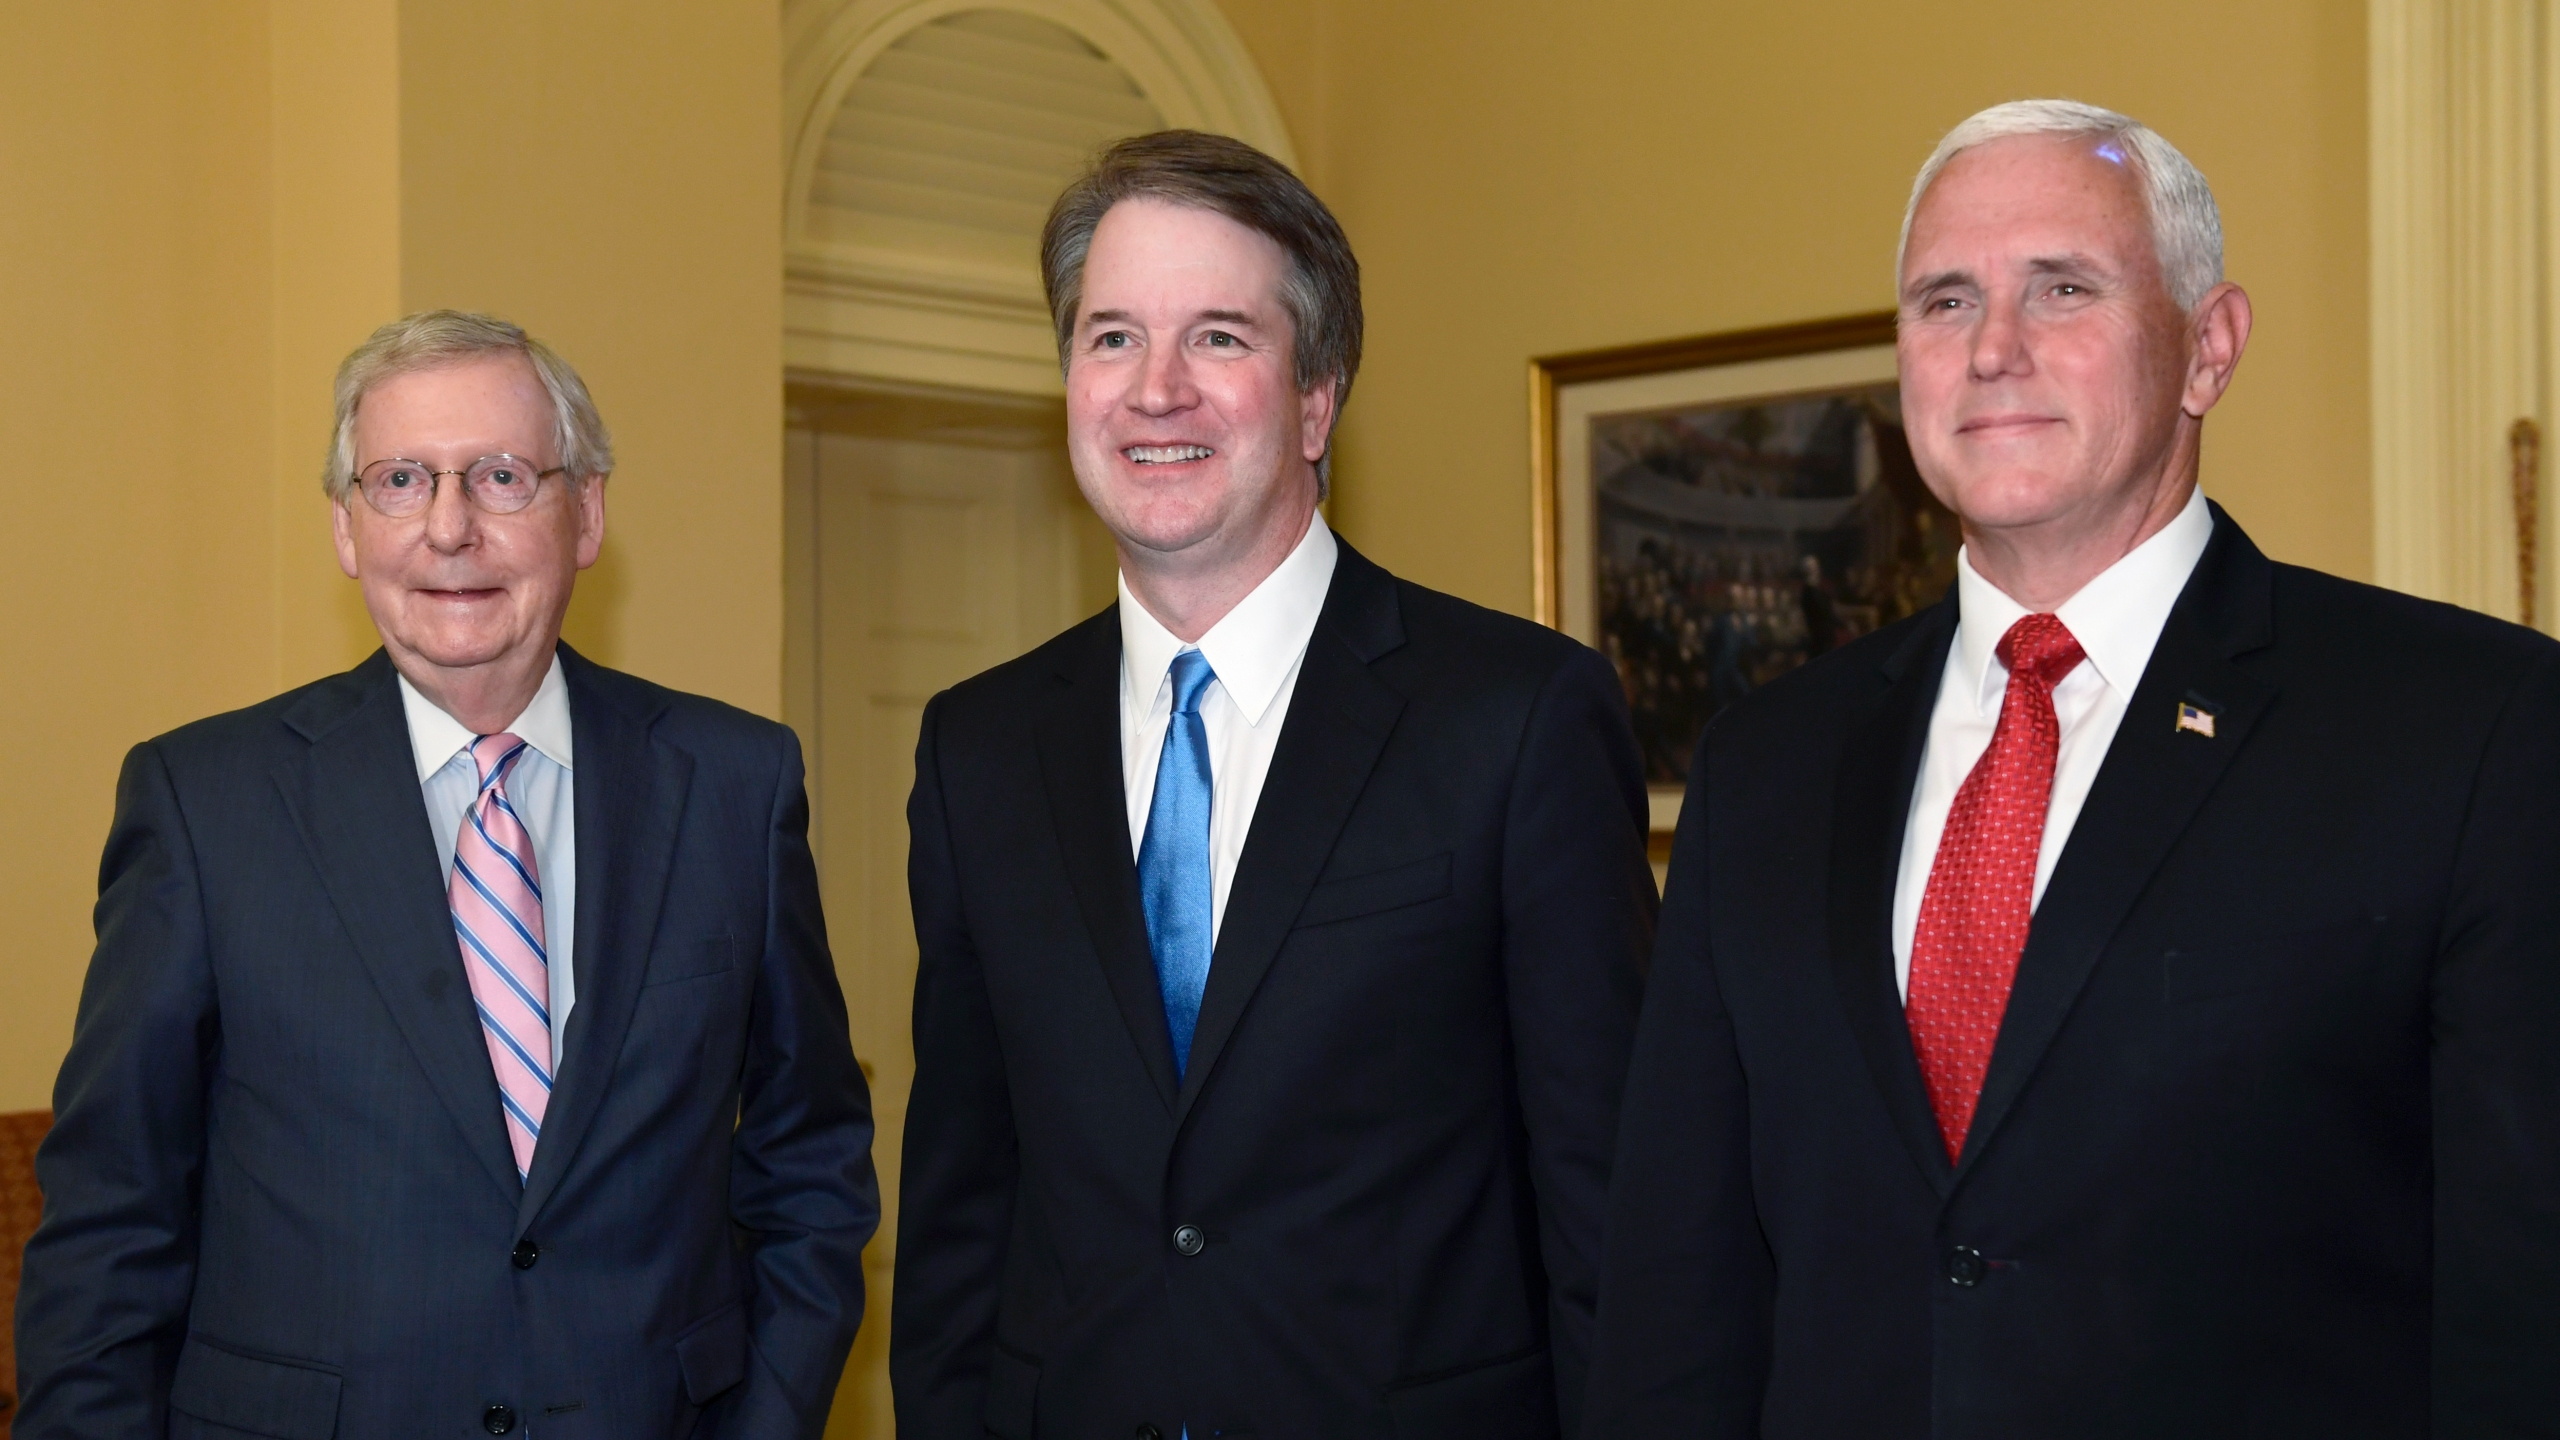 Supreme_Court_Kavanaugh_41594-159532.jpg11232259